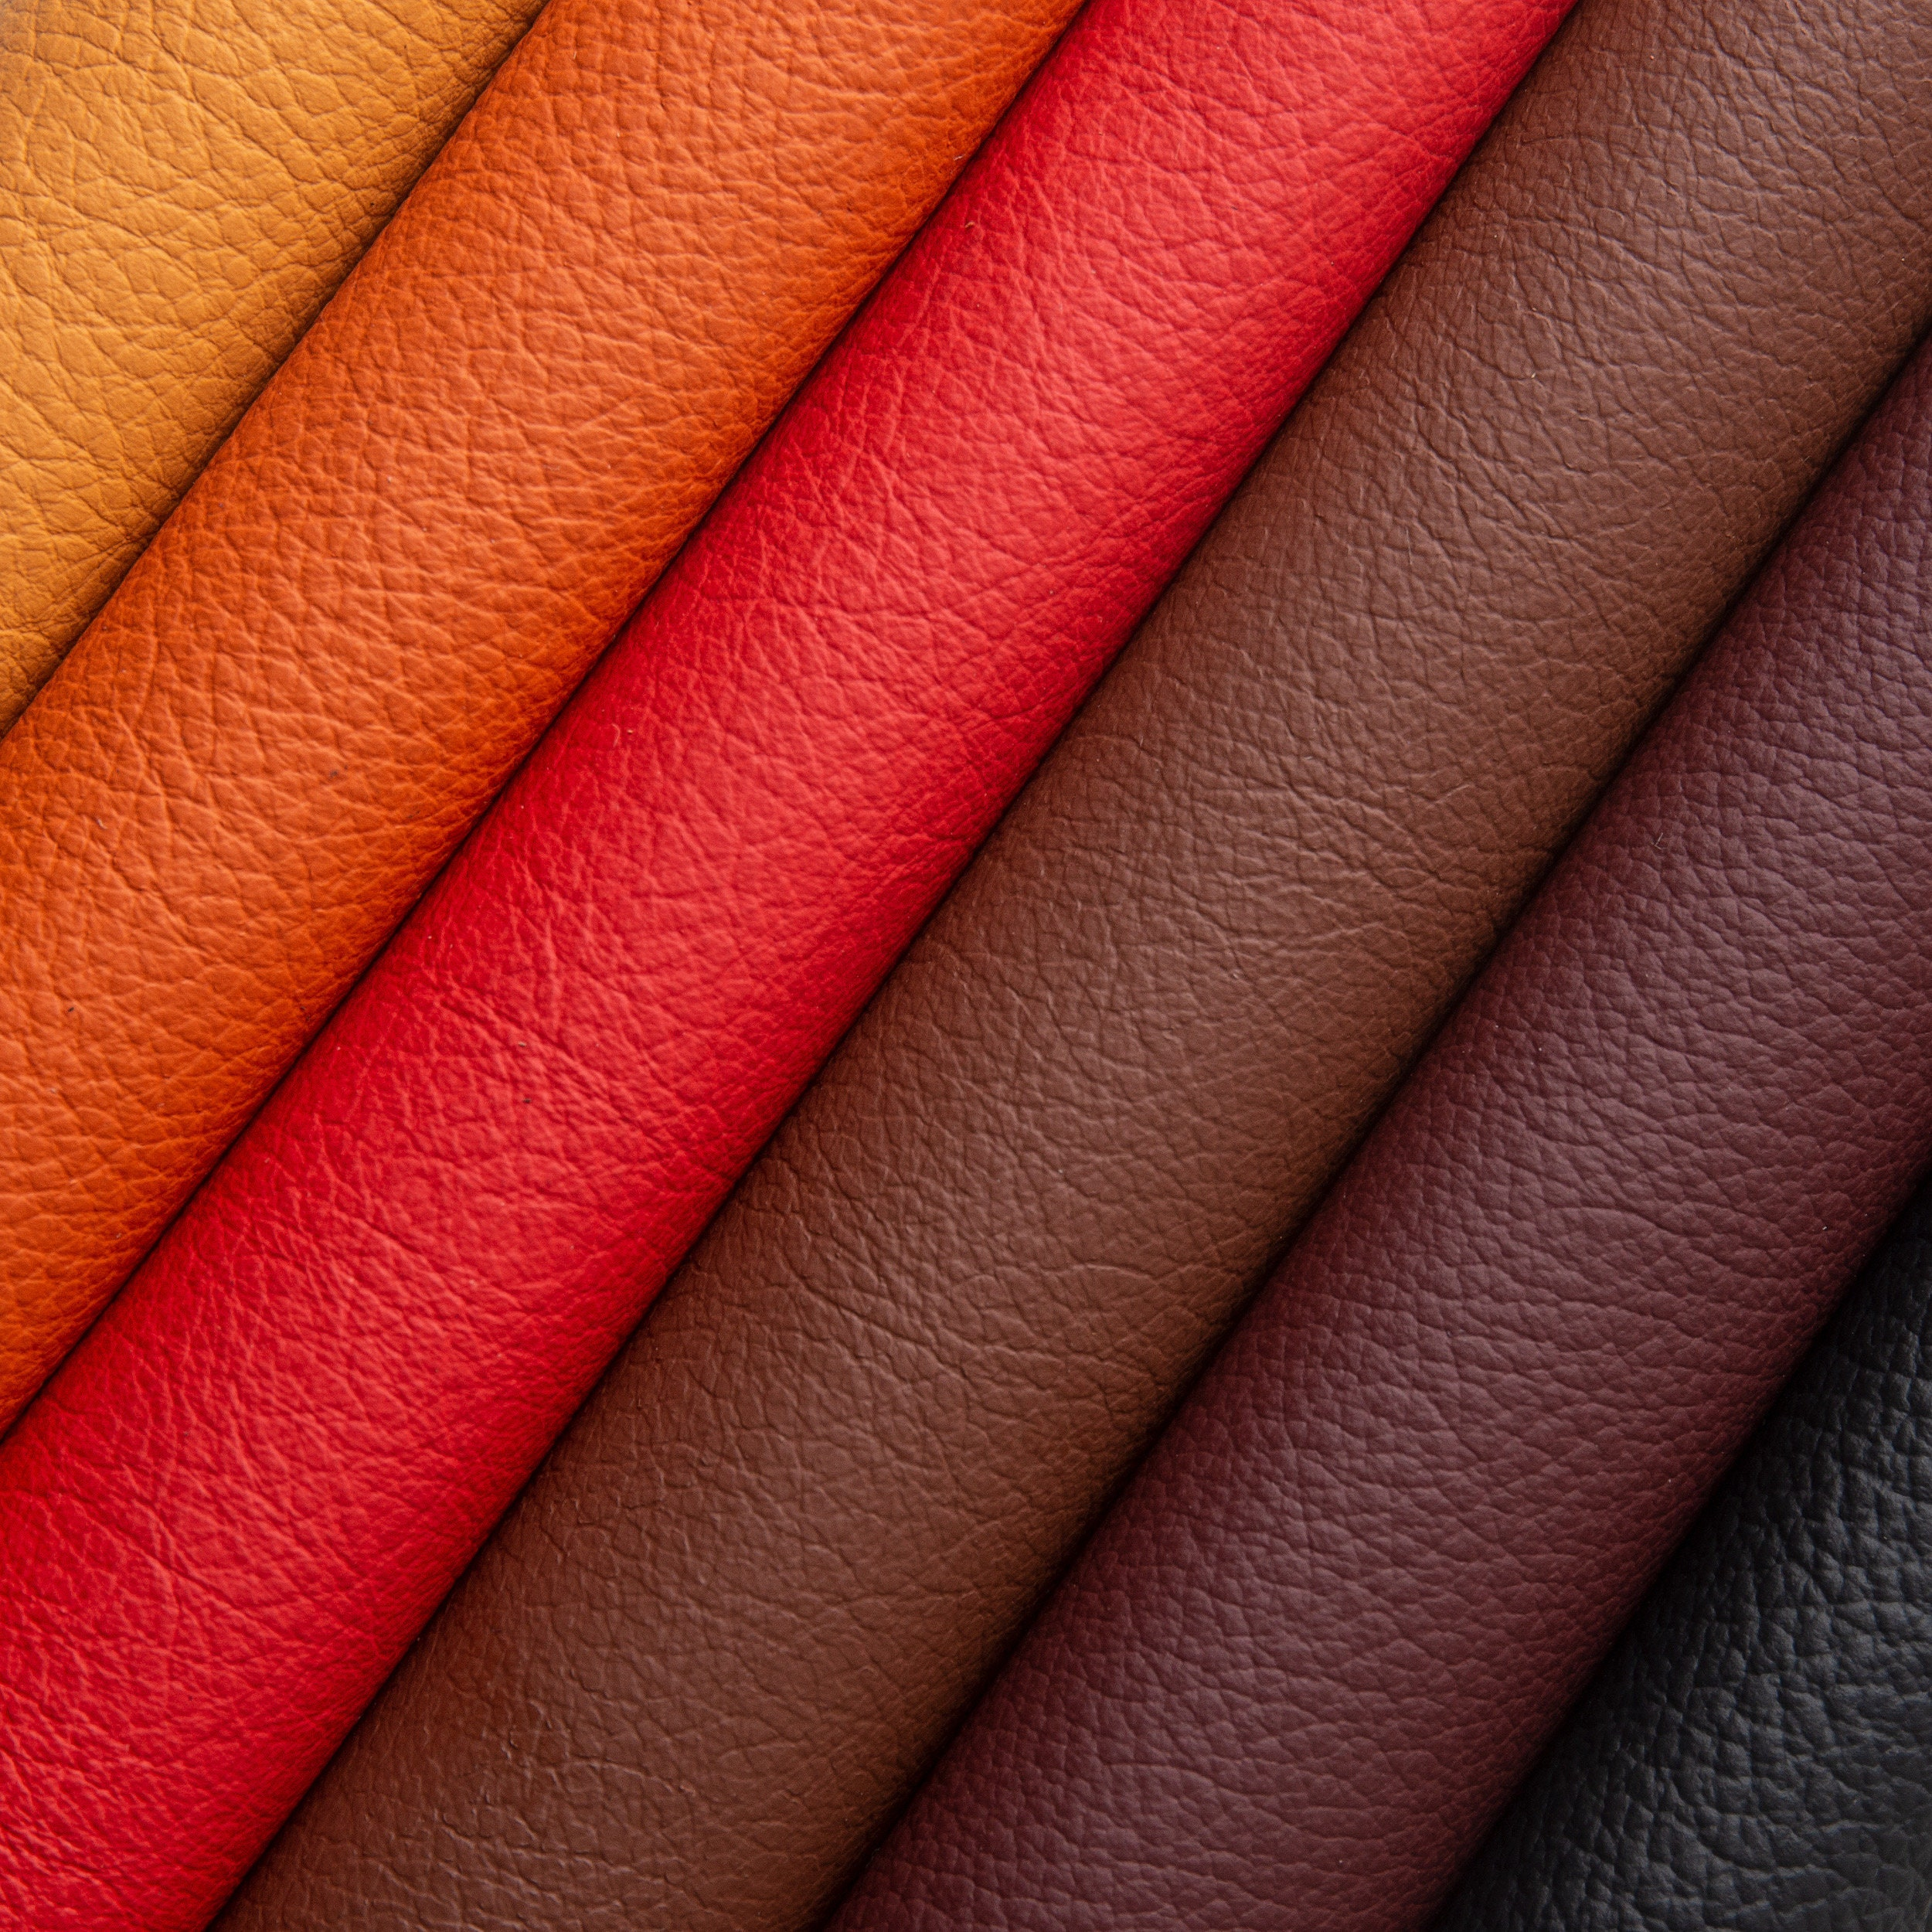 5 Mixed Leather Pieces White Embossed Leather Pink Leather Sheets Genuine Leather Cowhide Leather